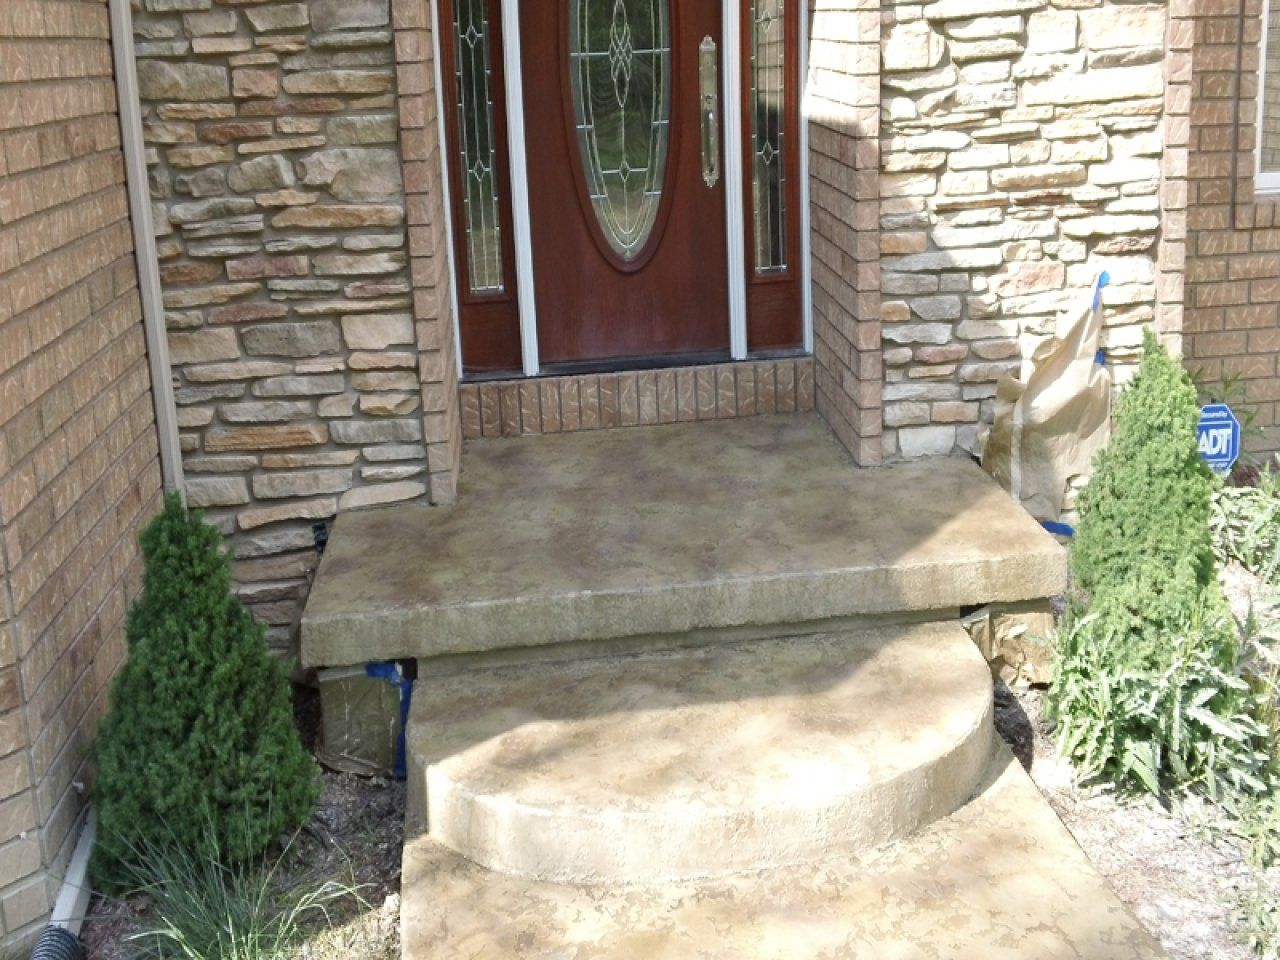 Tuscan Slate Creates Eye Catching Designs To Compliment Your Concrete Surface In Salt Lake City Utah Concrete Coatings Tuscan Concrete Decor